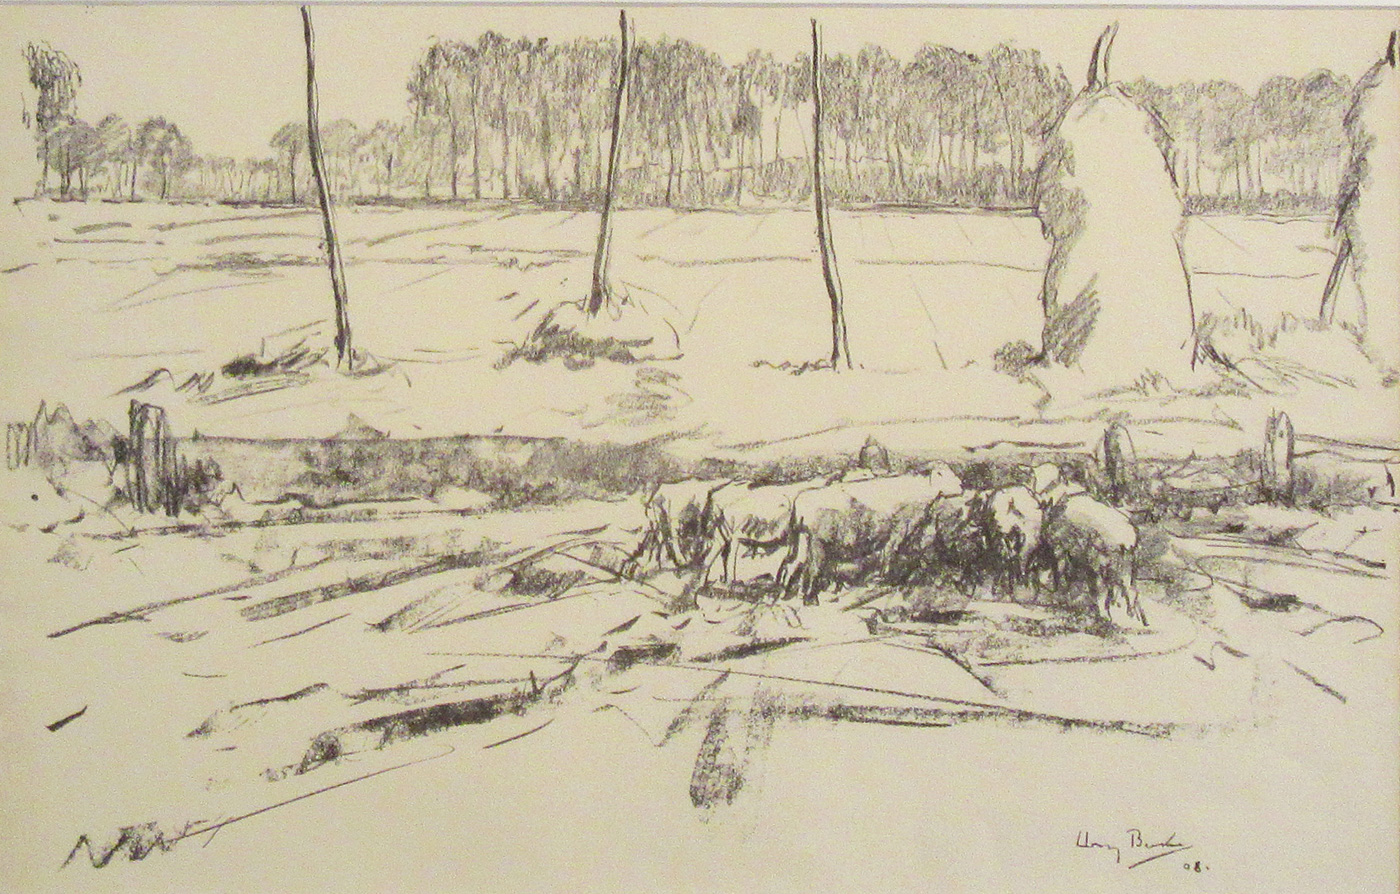 Sheep and Stooks, 1908 by  Harry Becker (1865-1928)